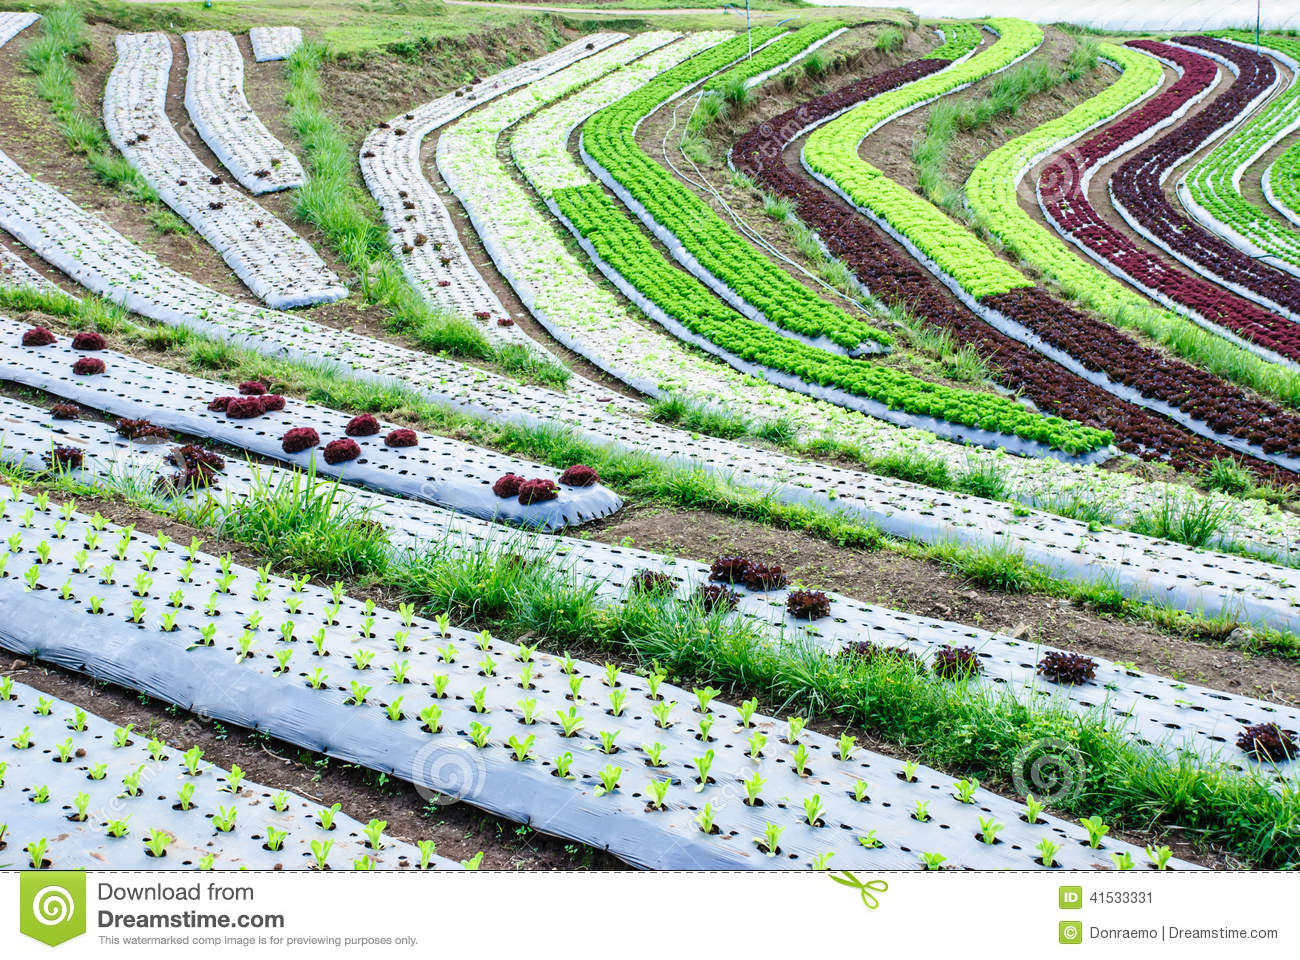 Terrace farming clipart clipground for Terrace cultivation